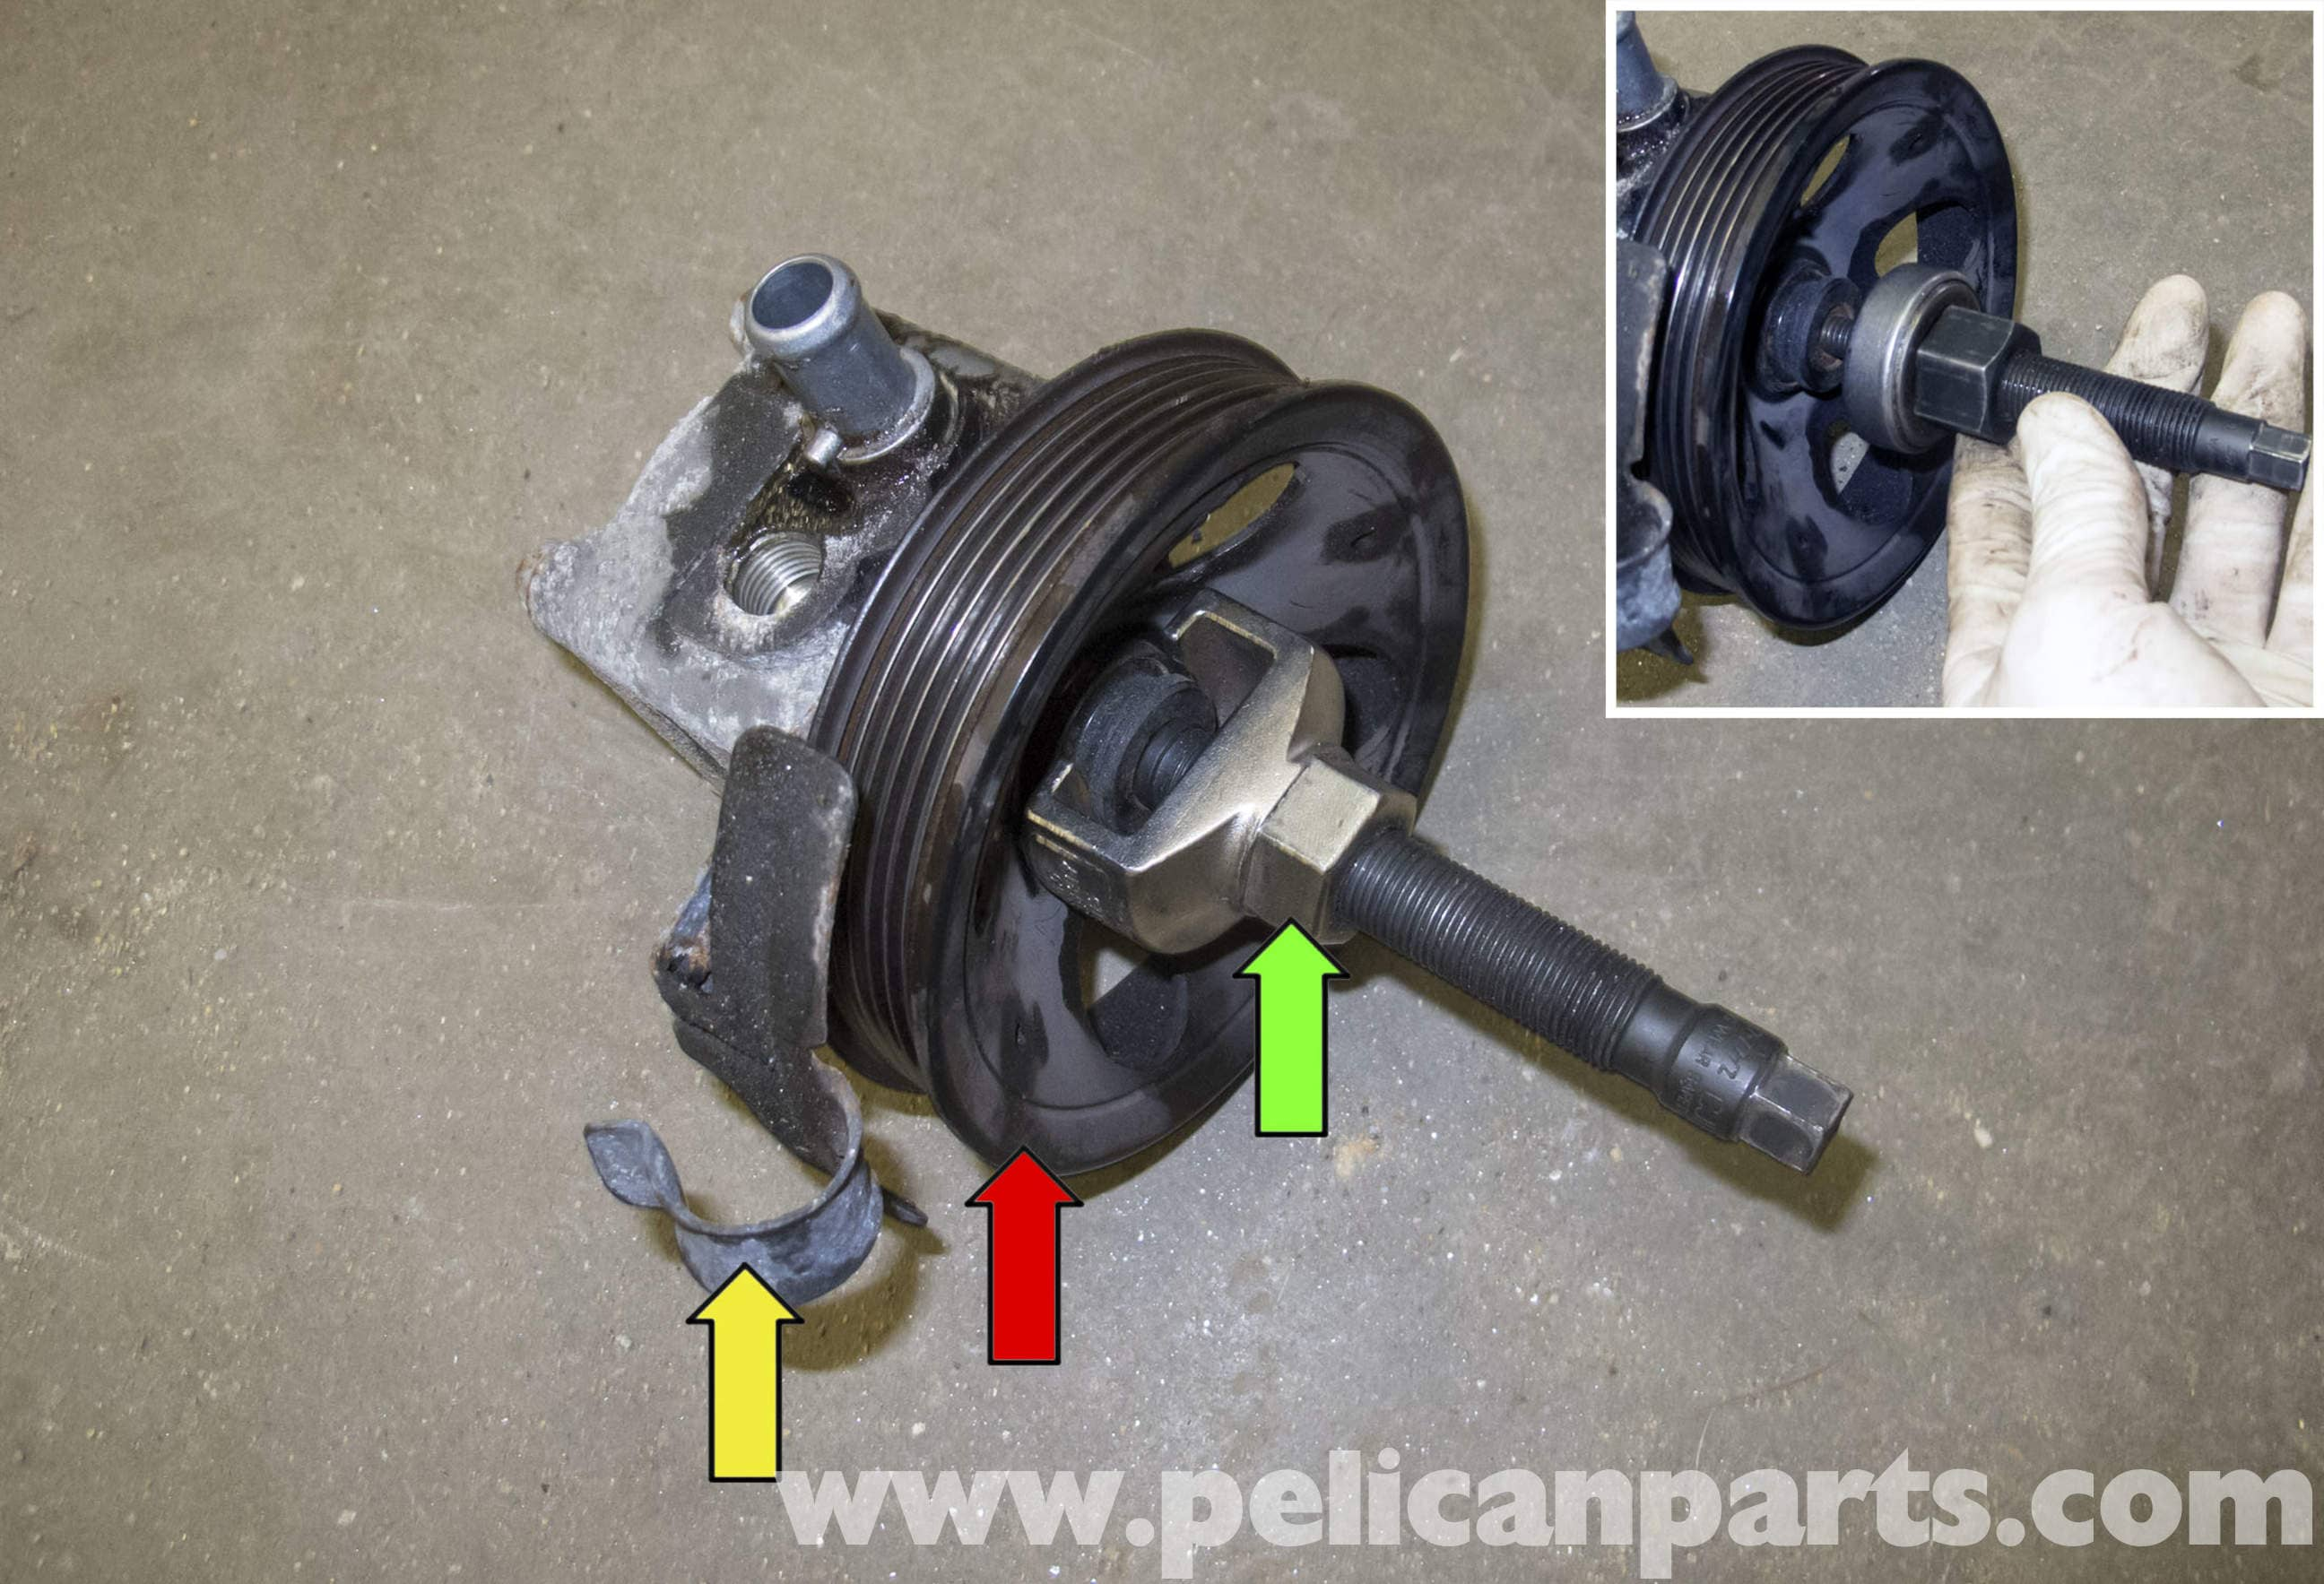 Volvo V70 Power Steering Pump Replacement (1998-2007